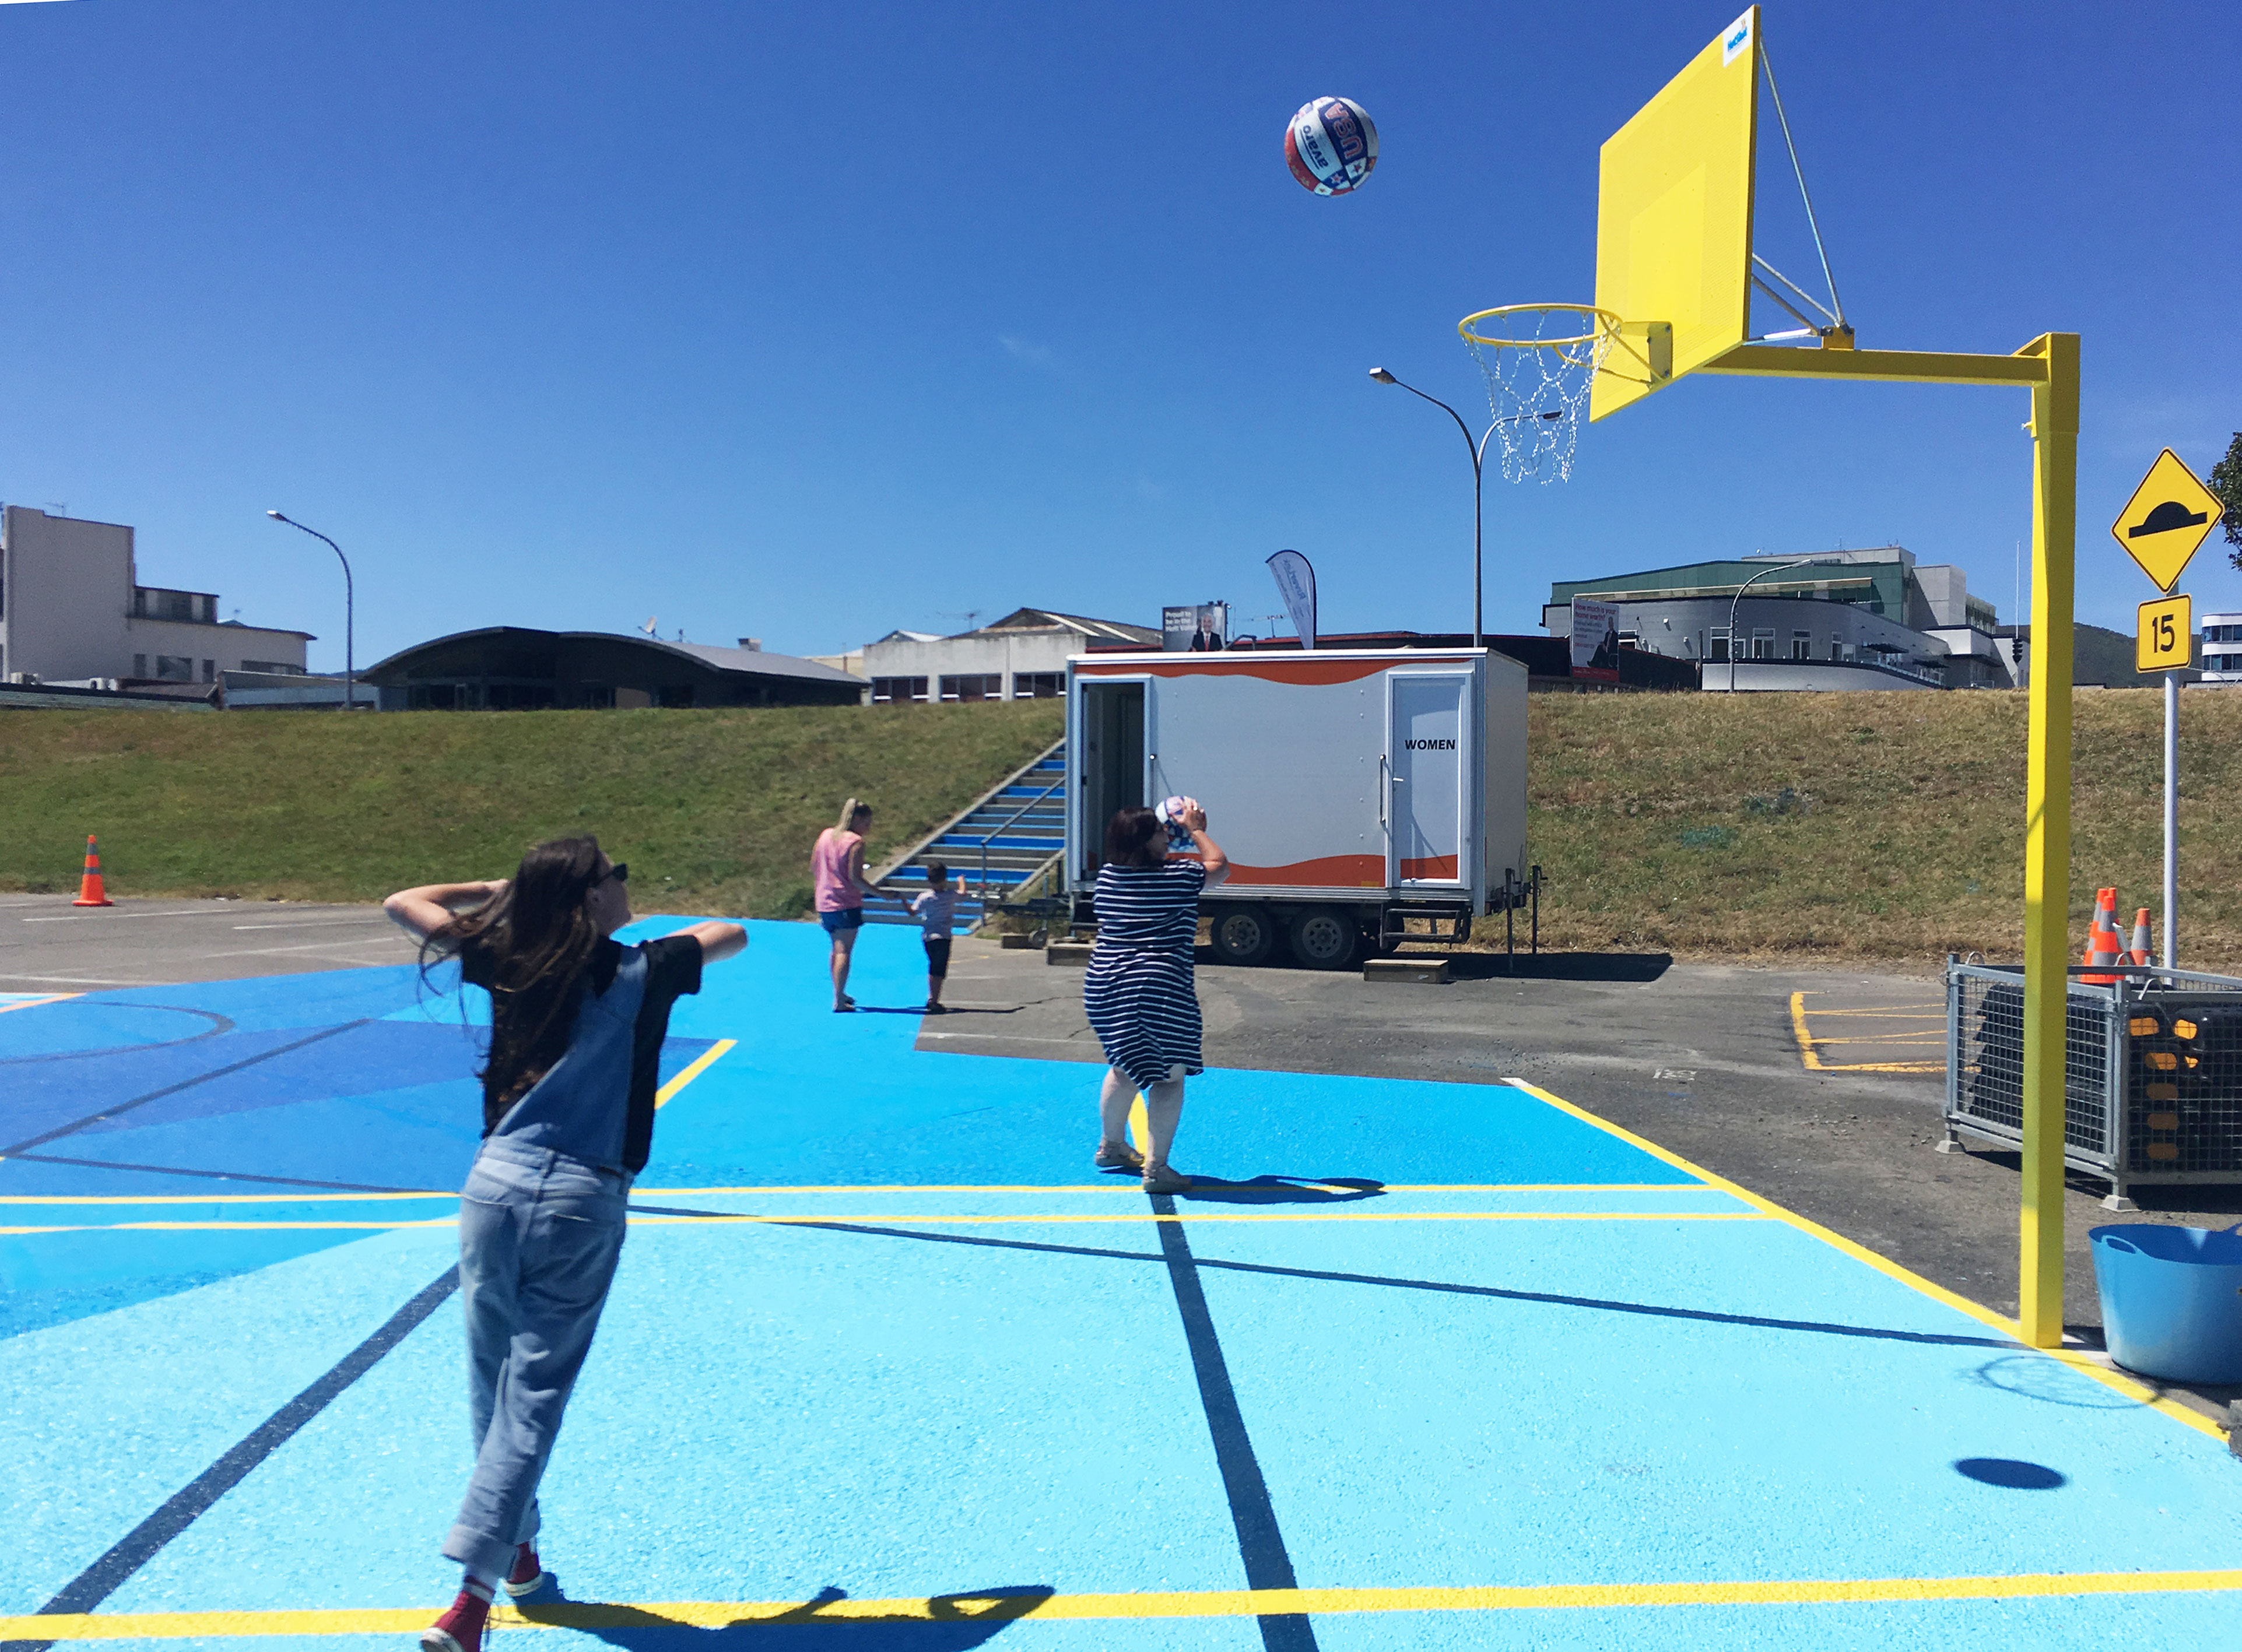 Another summer of placemaking at Riverlink